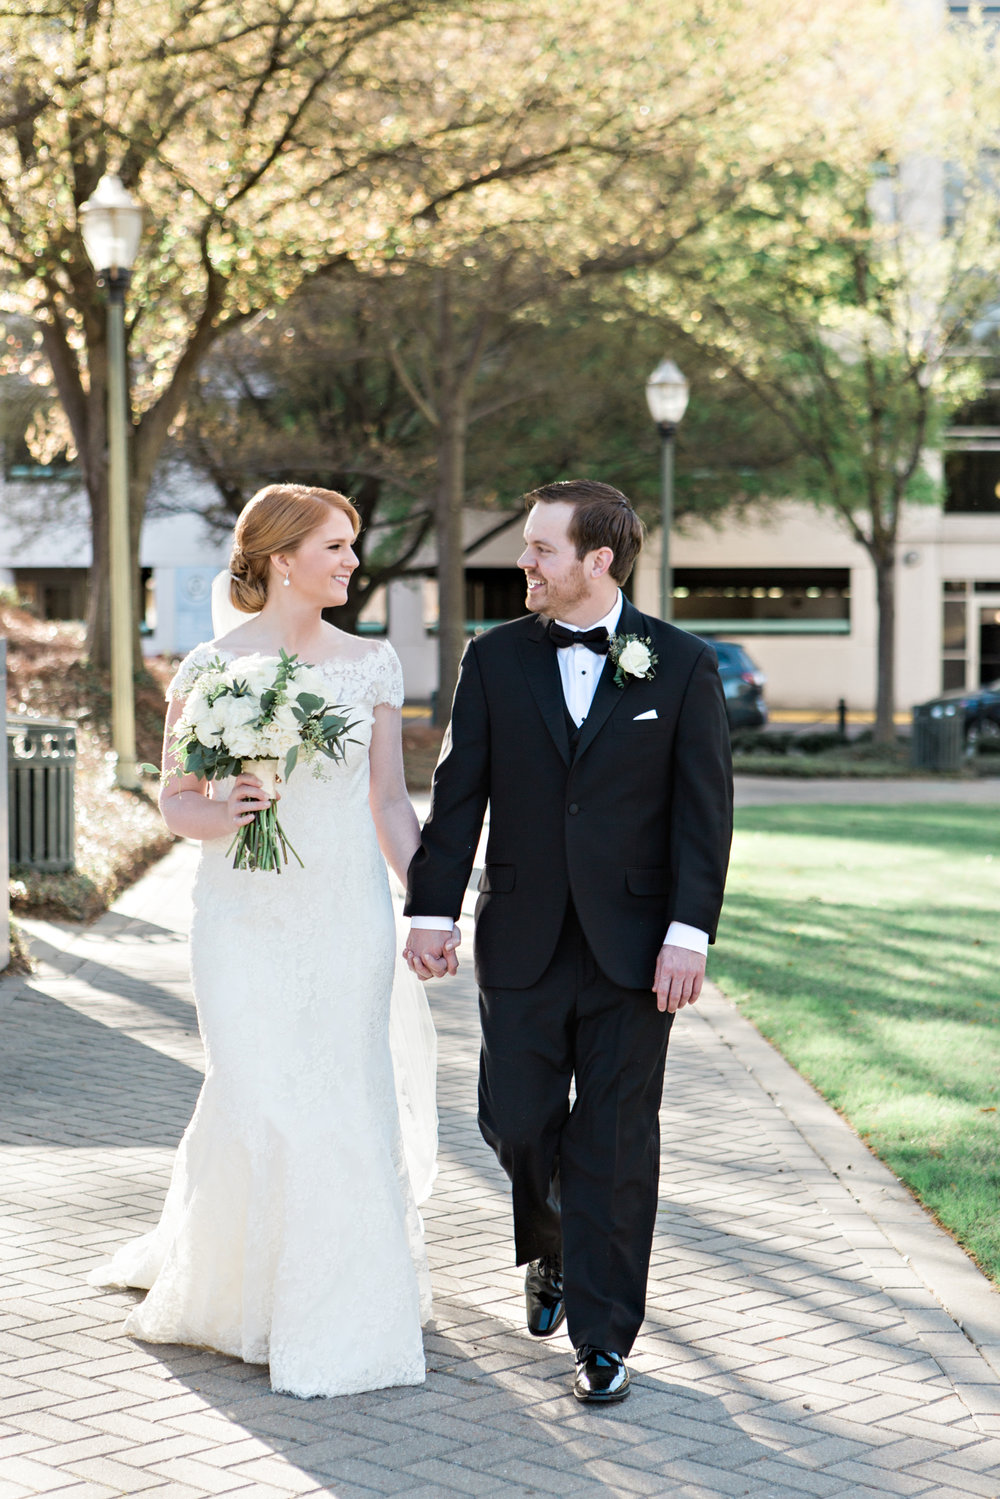 Matty-Drollette-Photography-Weddings-Montgomery-Alabama-114.jpg